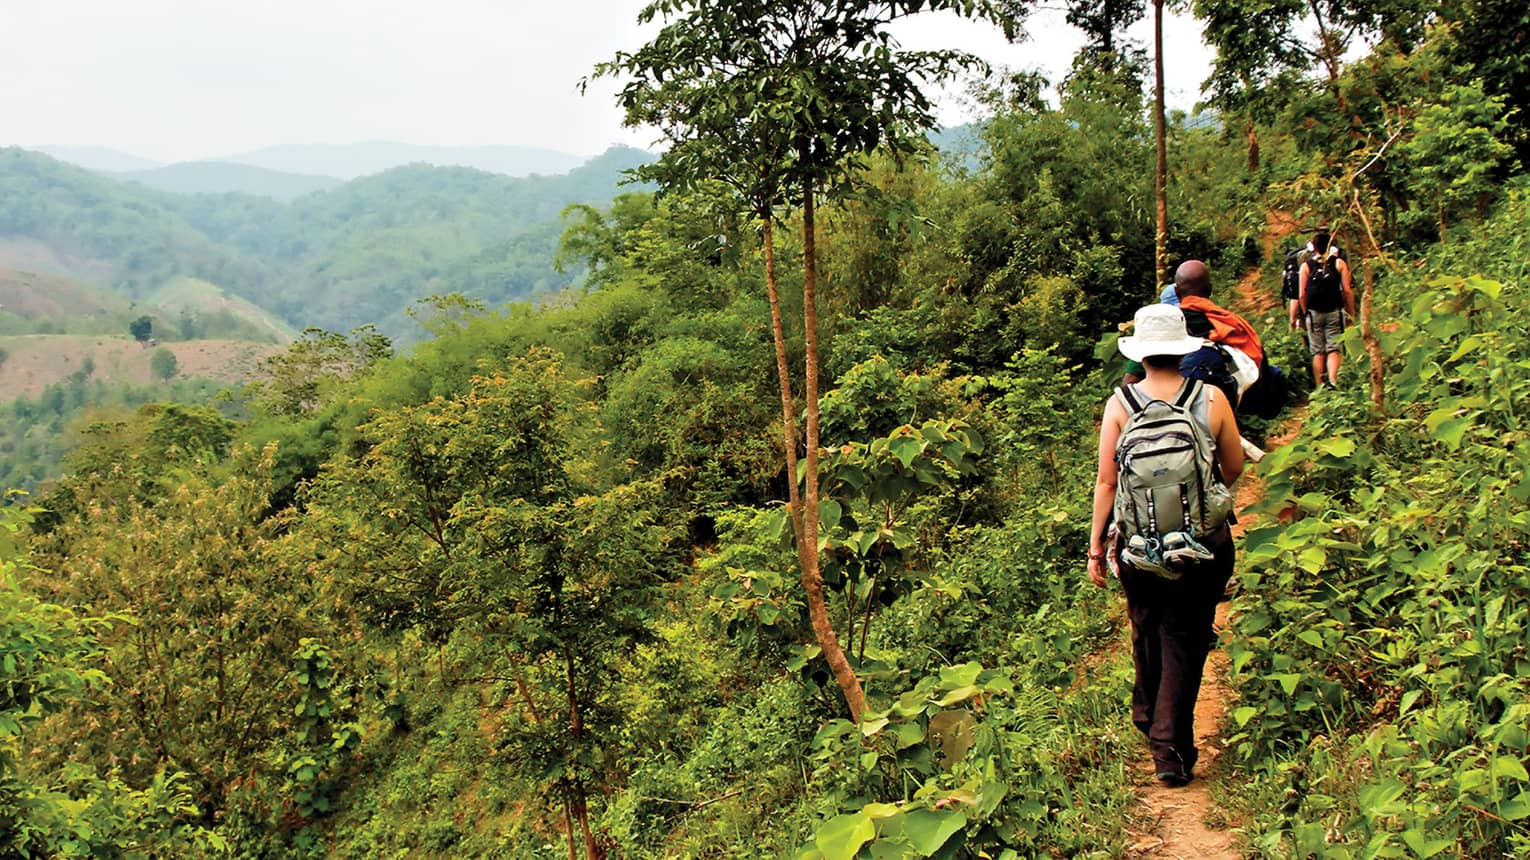 Back view of travellers hiking along path in jungle mountains, northern Thailand